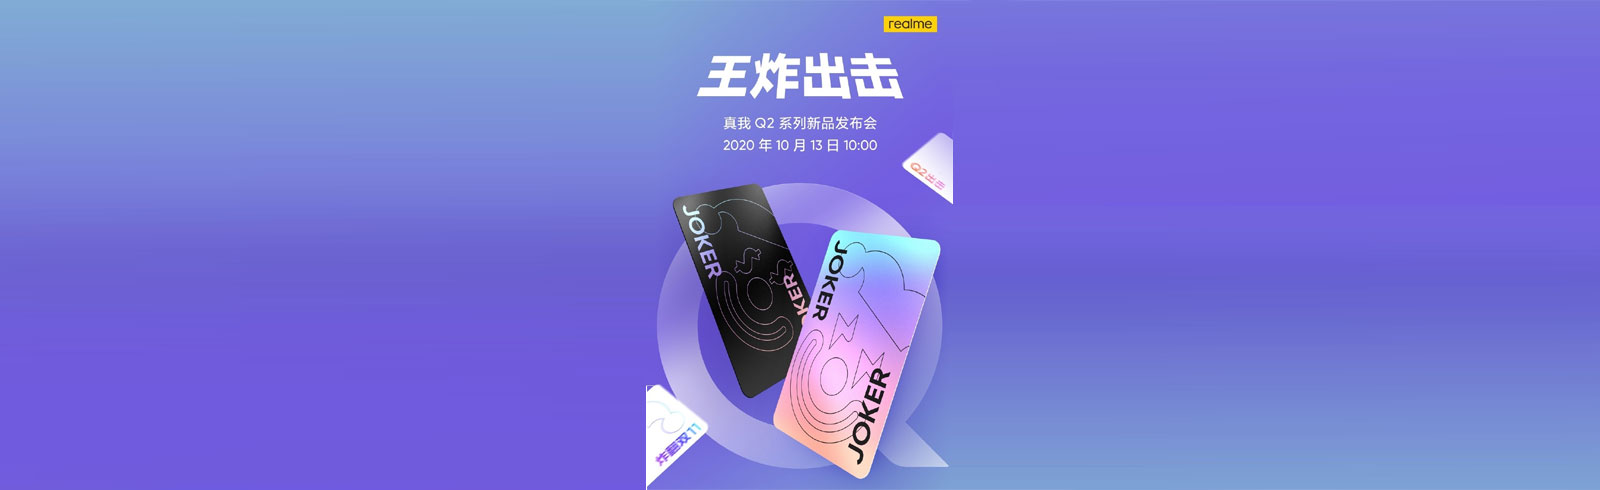 Realme Q2 and Realme Q2 Pro will be unveiled on October 13th